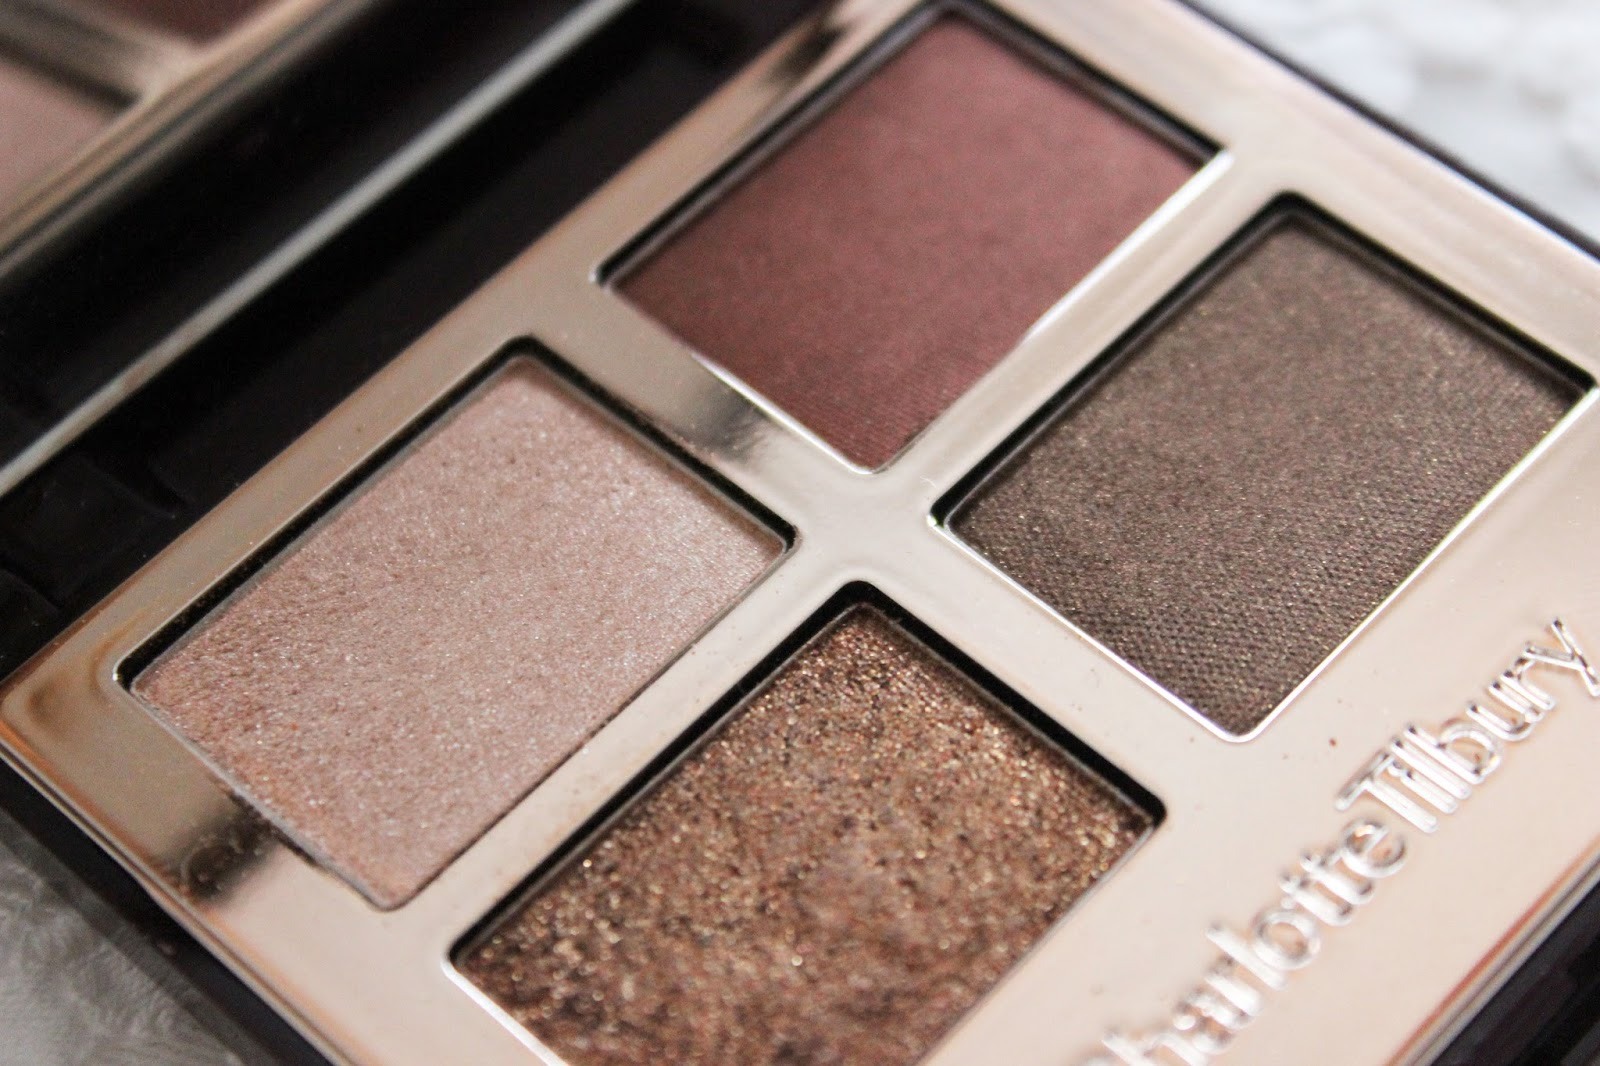 Charlotte Tilbury: The Dolce Vita Eyeshadow Quad // Review